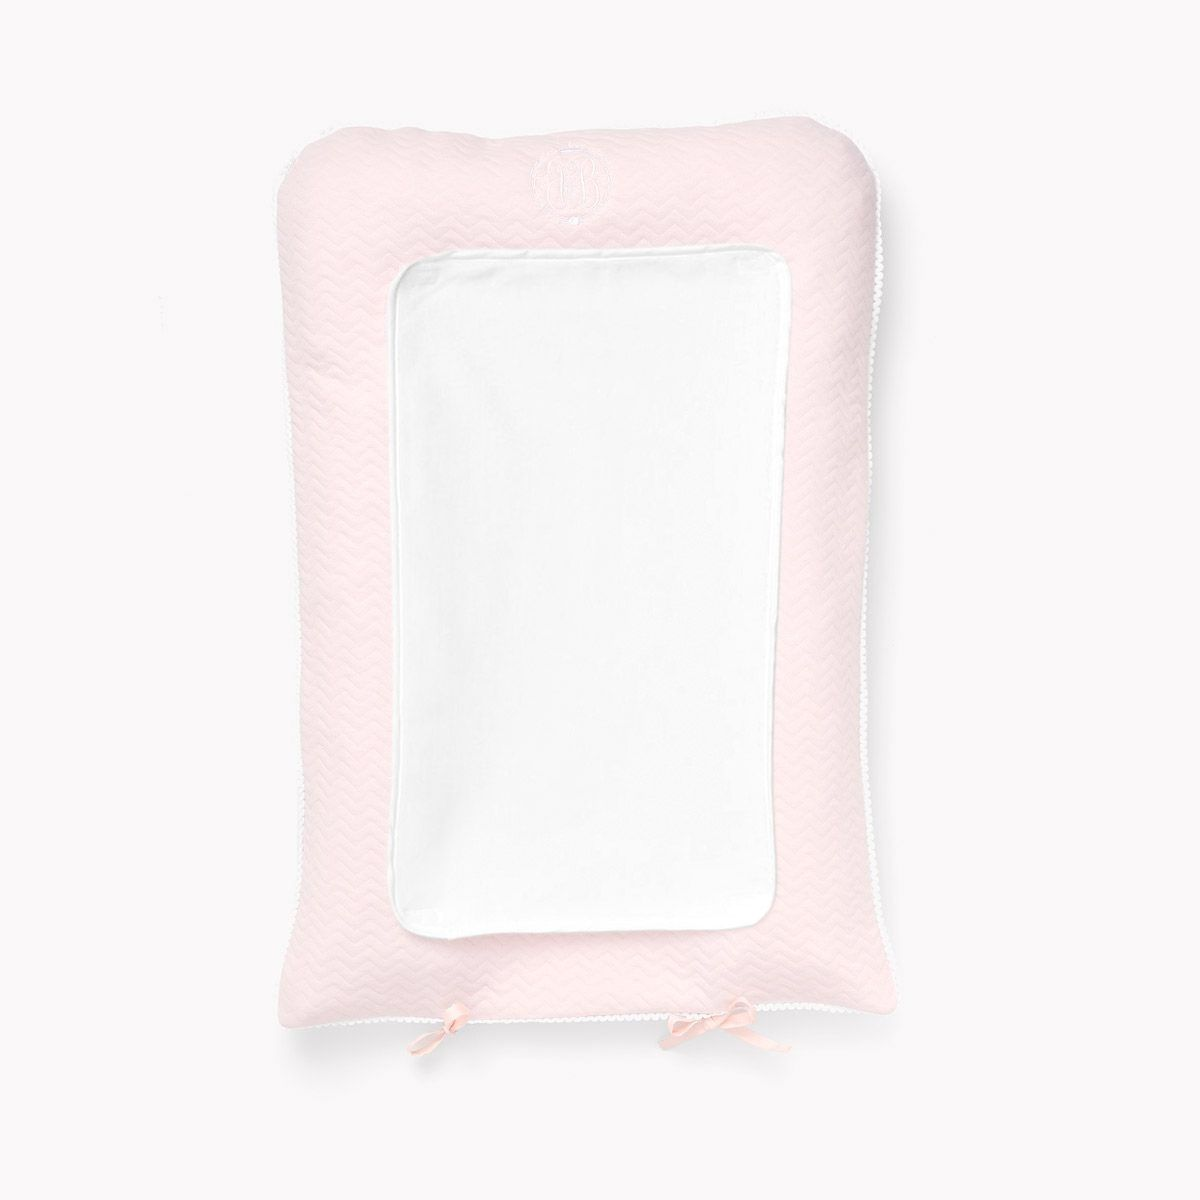 POMME CARAMEL BABY - BIRTH PECHE MELBA CHANGING MAT COVER PC-CMP-HML